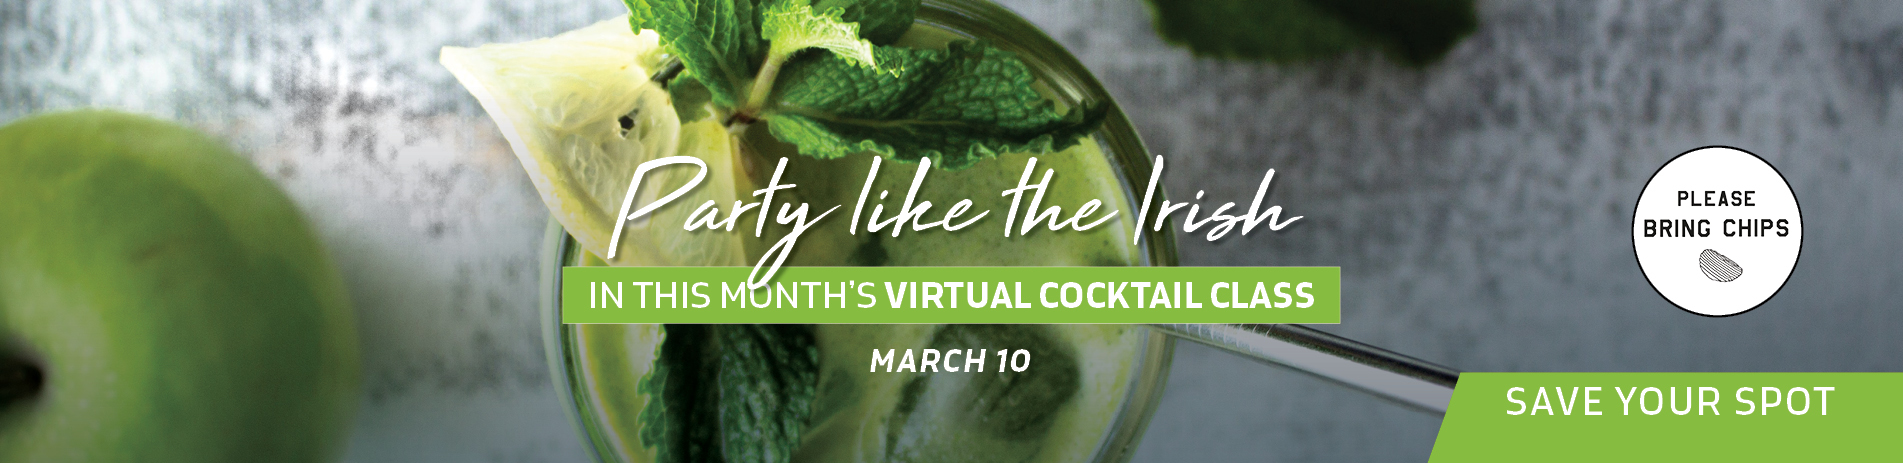 DC Virtual Craft Cocktail Class – PBC – MAR 10th HomePg Slider